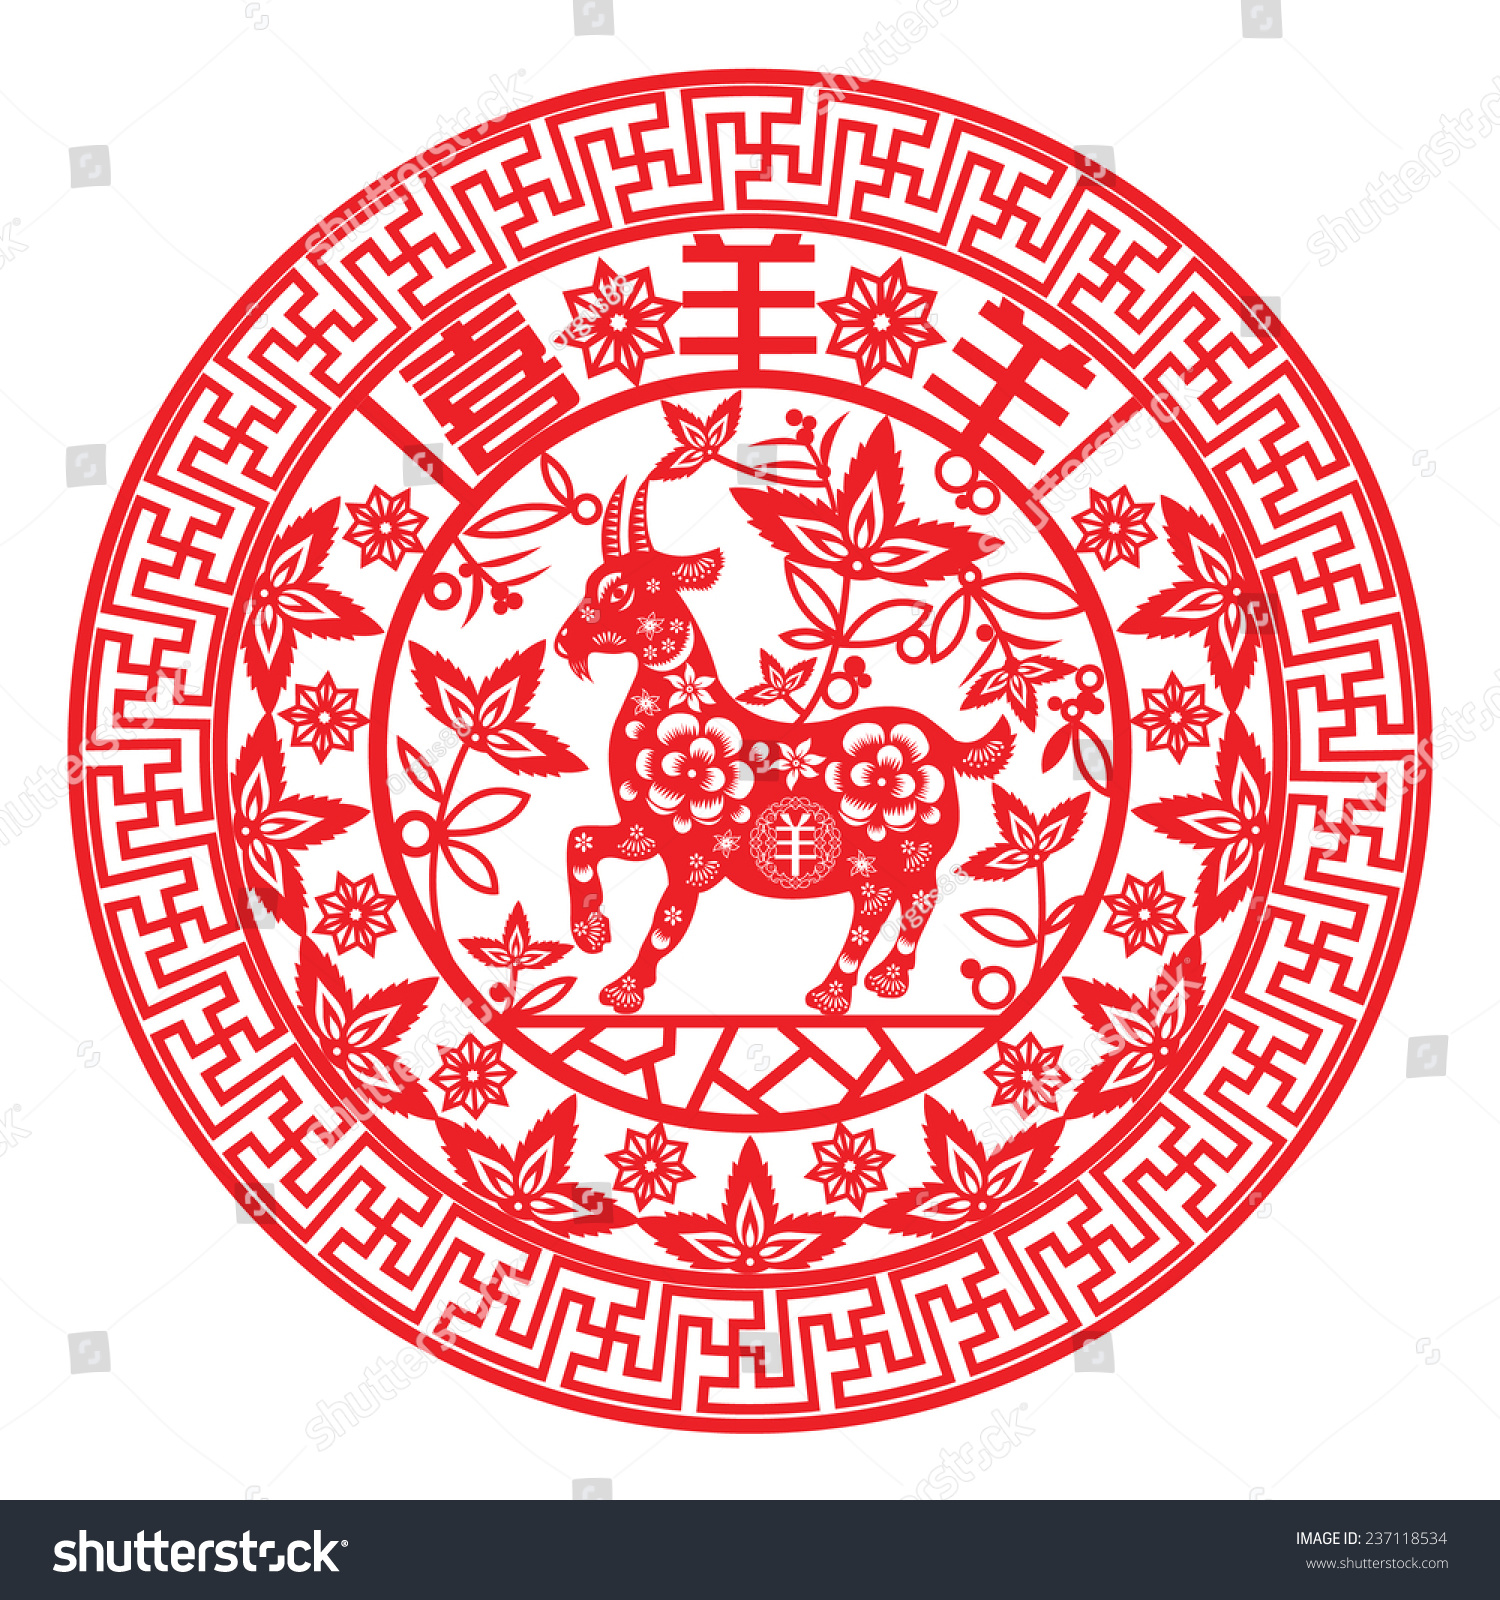 Chinese year goat made by traditional stock vector 237118534 chinese year of goat made by traditional chinese paper cut arts goat year chinese zodiac biocorpaavc Images